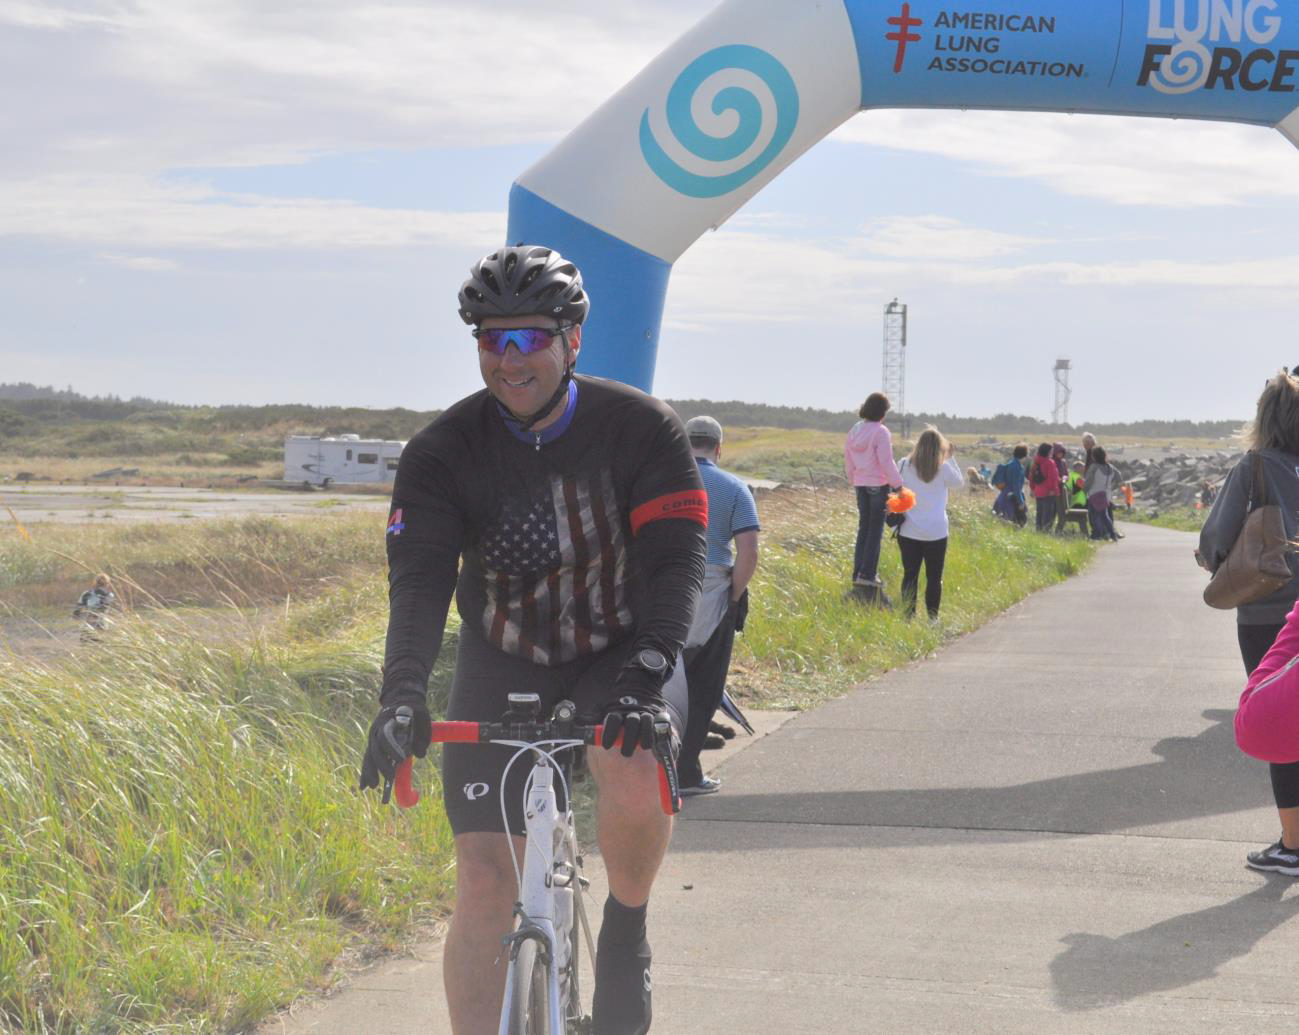 Over 800 Cyclists Participate in the American Lung Association's Inaugural Reach the Beach Washington